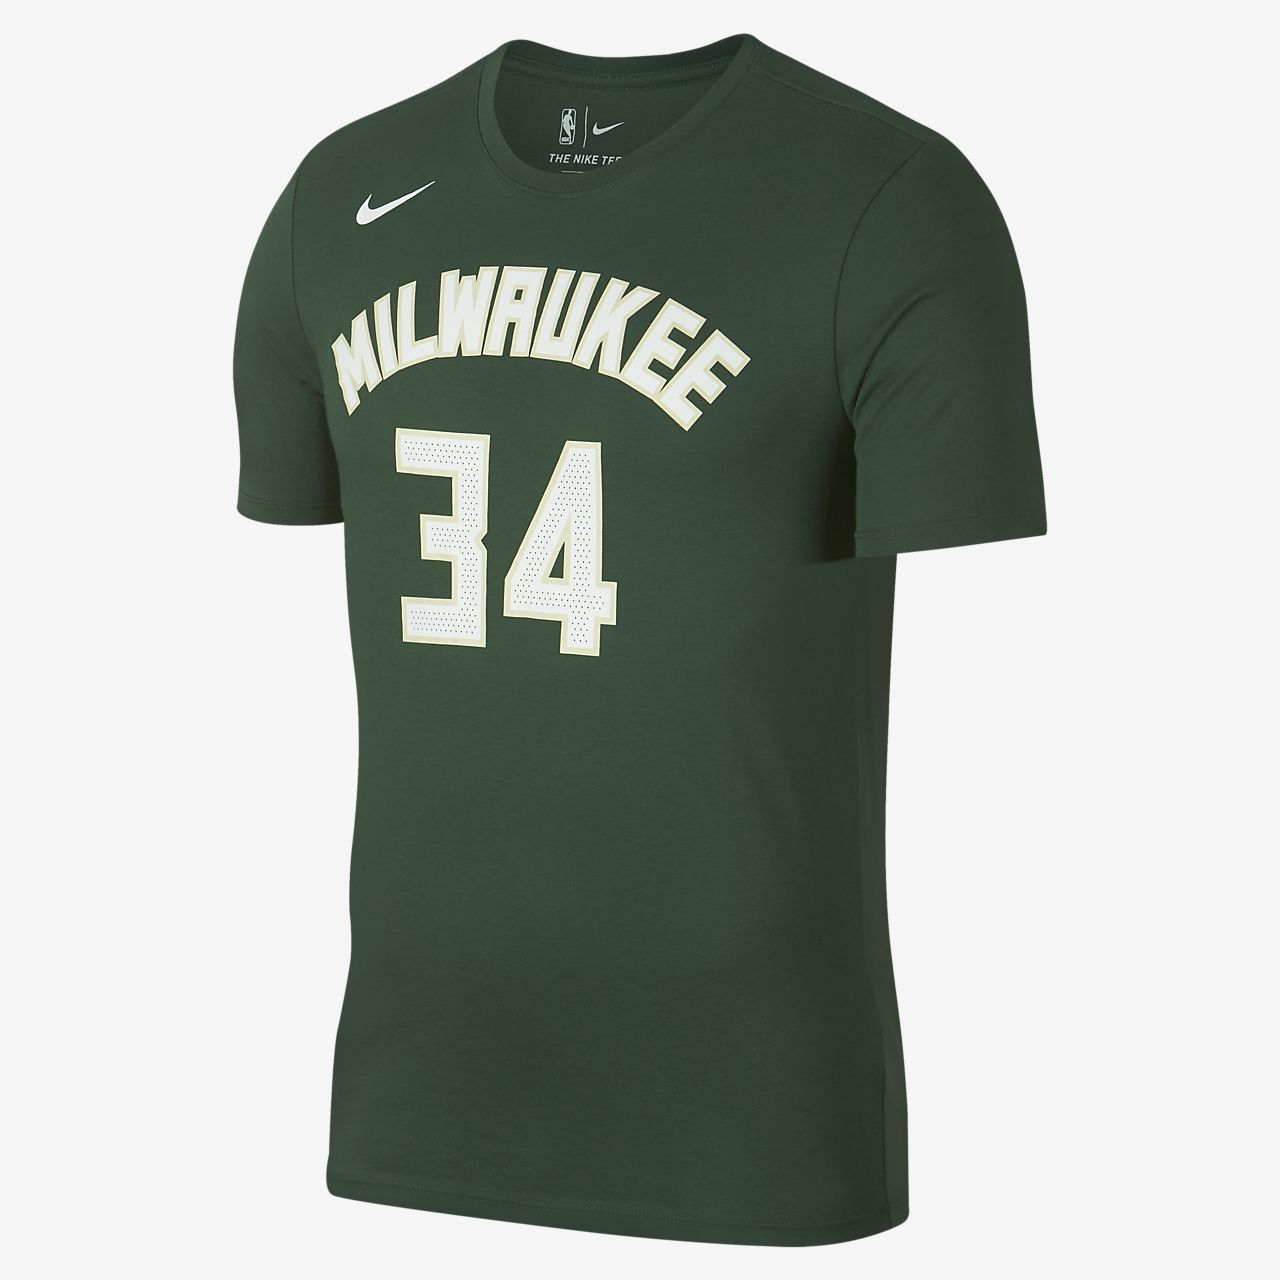 Bucks Pro Shop is the official online store of the Milwaukee Bucks. Get Bucks t-shirts, hats, jerseys, ladies apparel and more at bossmixe.gq